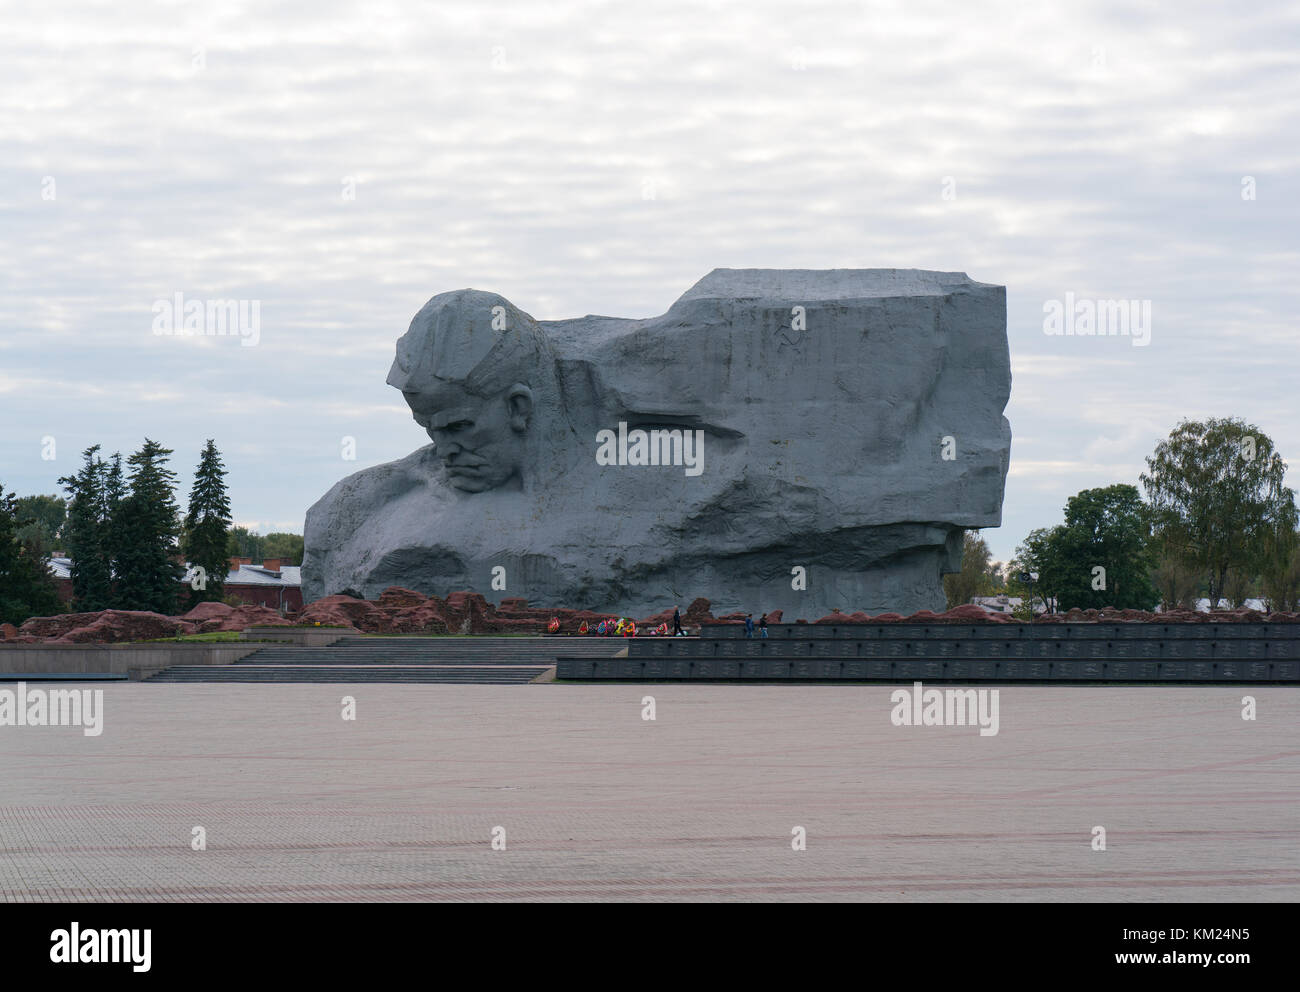 Brest, Belarus - September 25, 2016: necropolis and Courage Monument in Brest Fortress - Stock Image